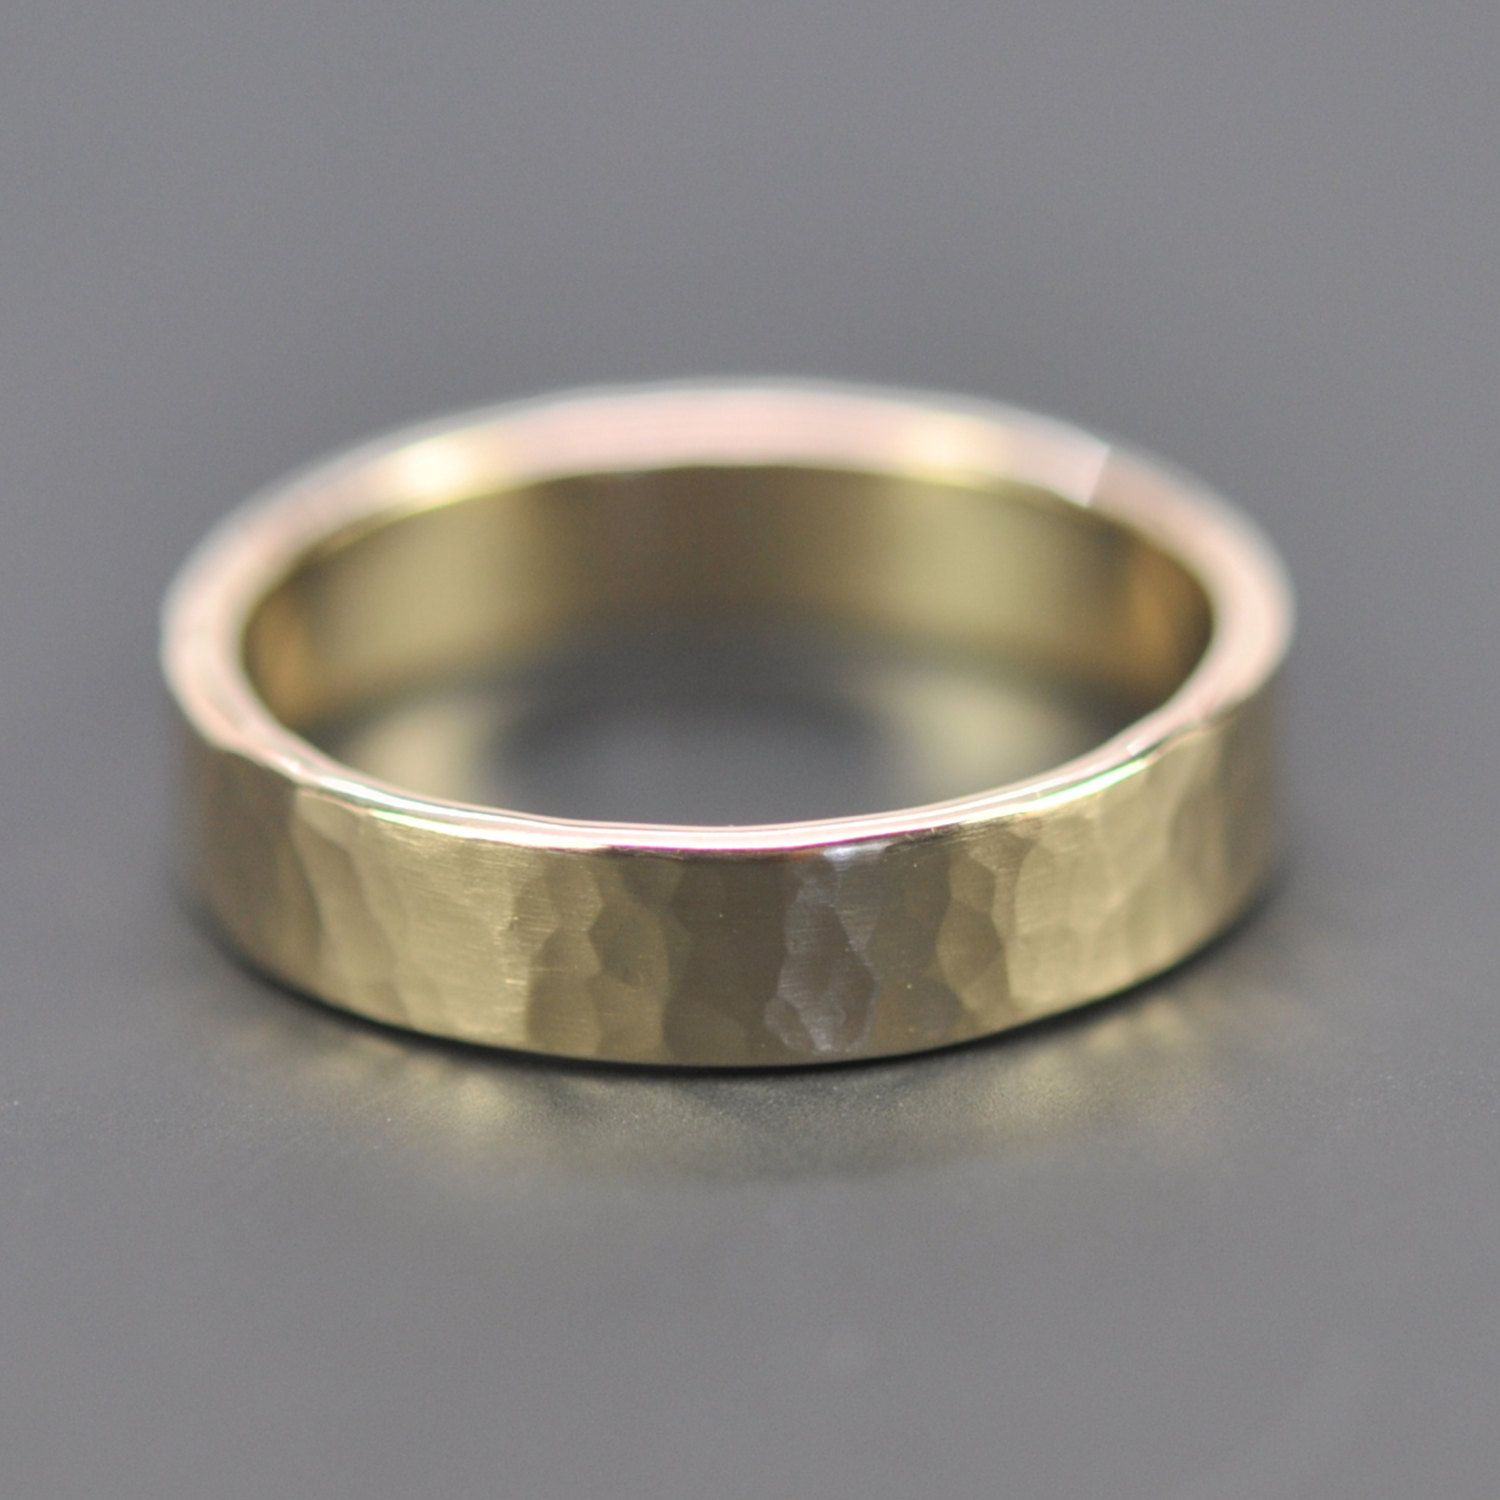 Mens 14K Yellow Gold Wedding Band, 5mm Hammered Gold Ring, Matte Finish, Sea